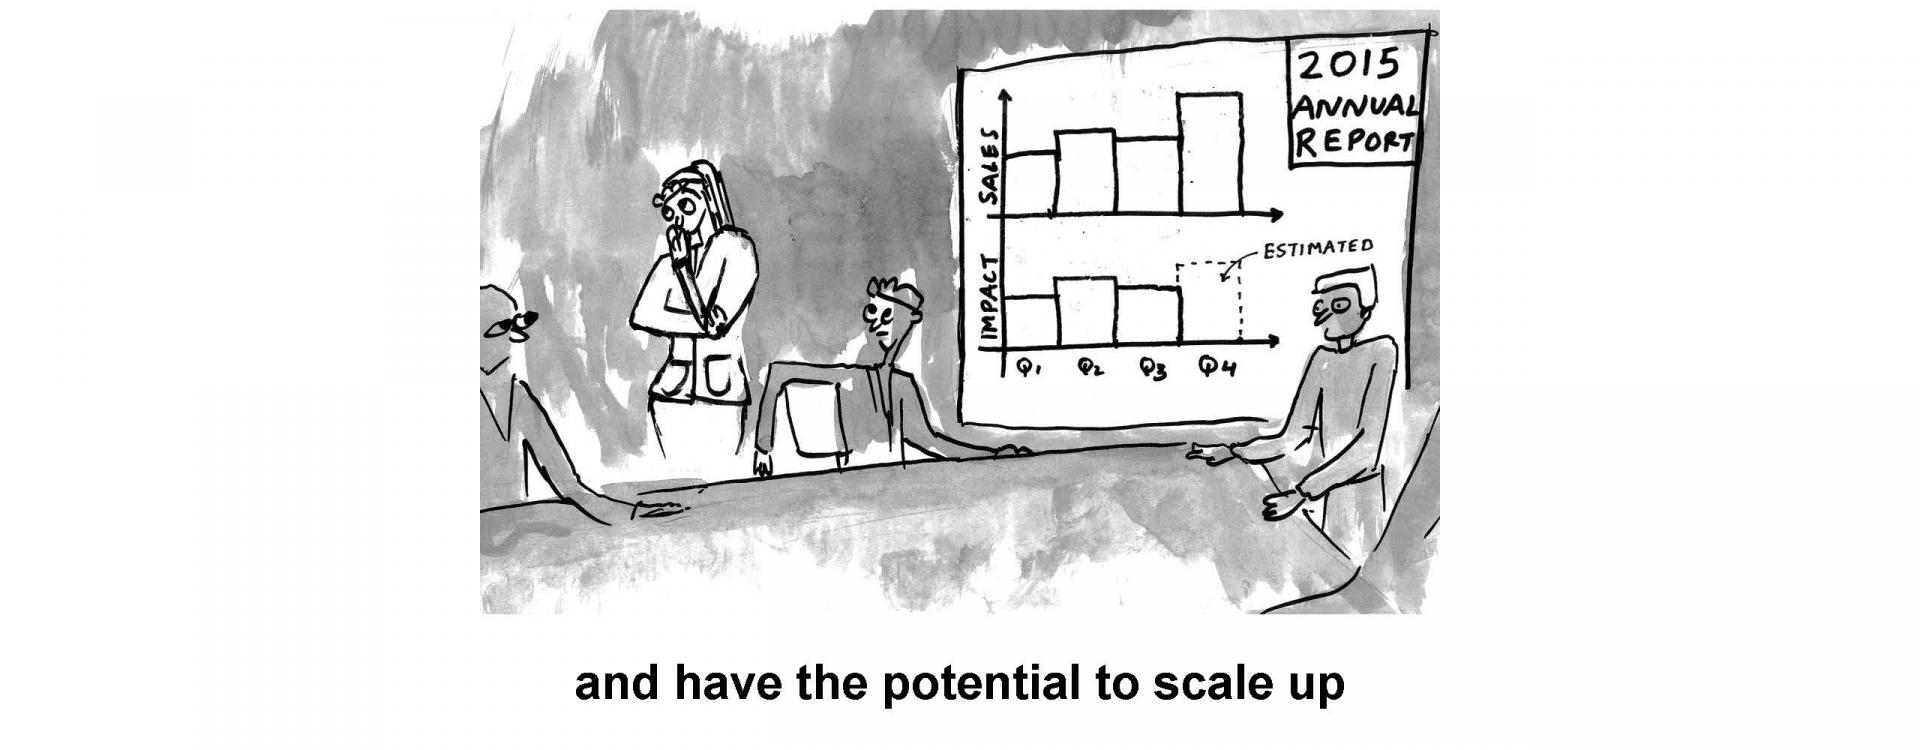 and have the potential to scale up